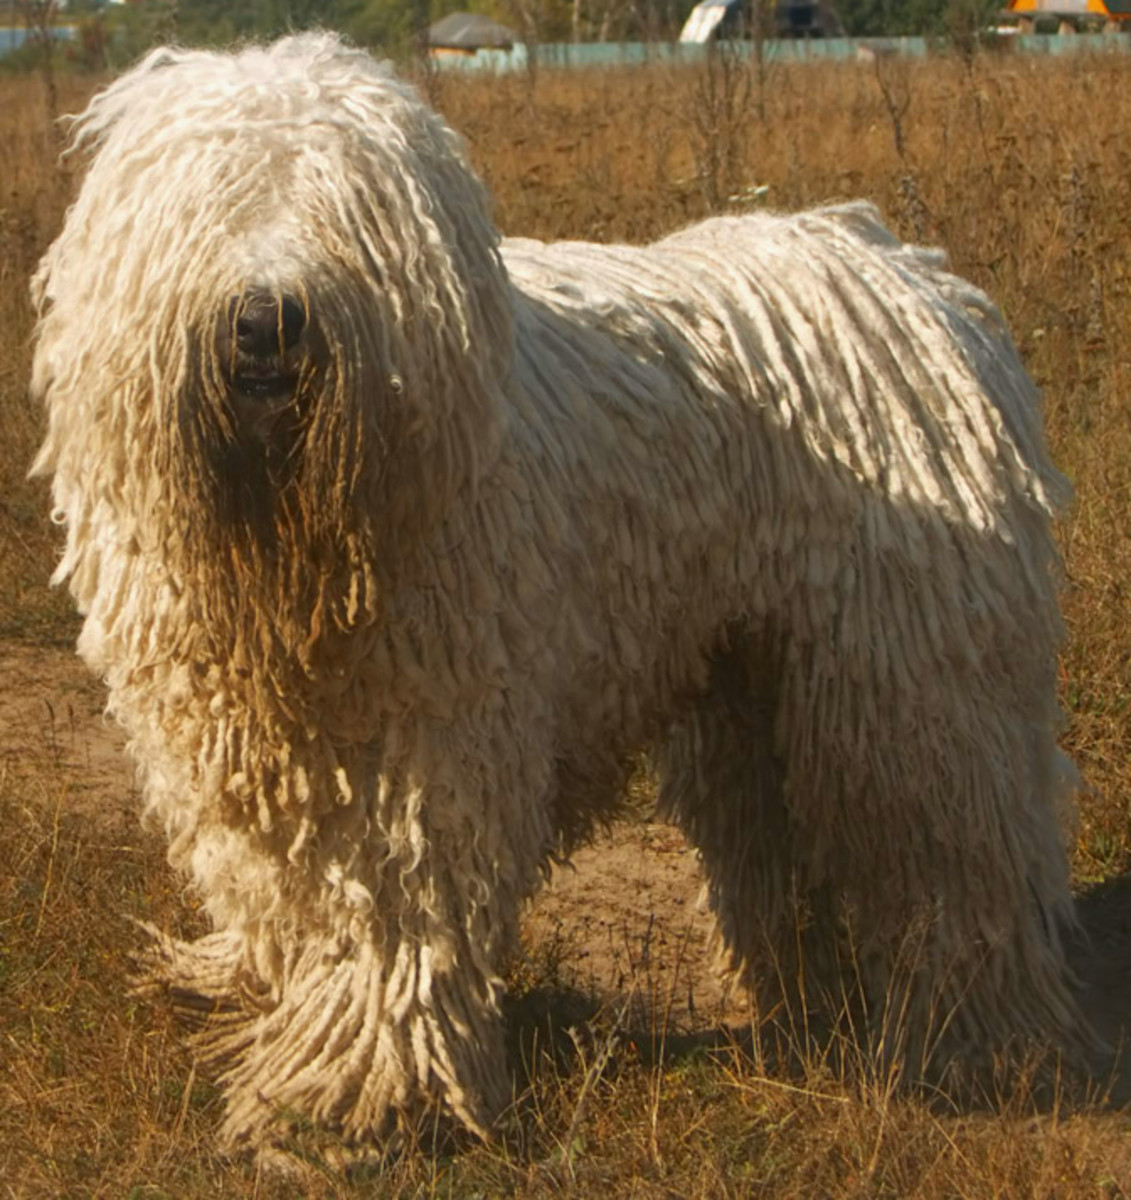 Komondors are one of Hungary's national breeds. The special dread lock coat protects against extreme temperatures.